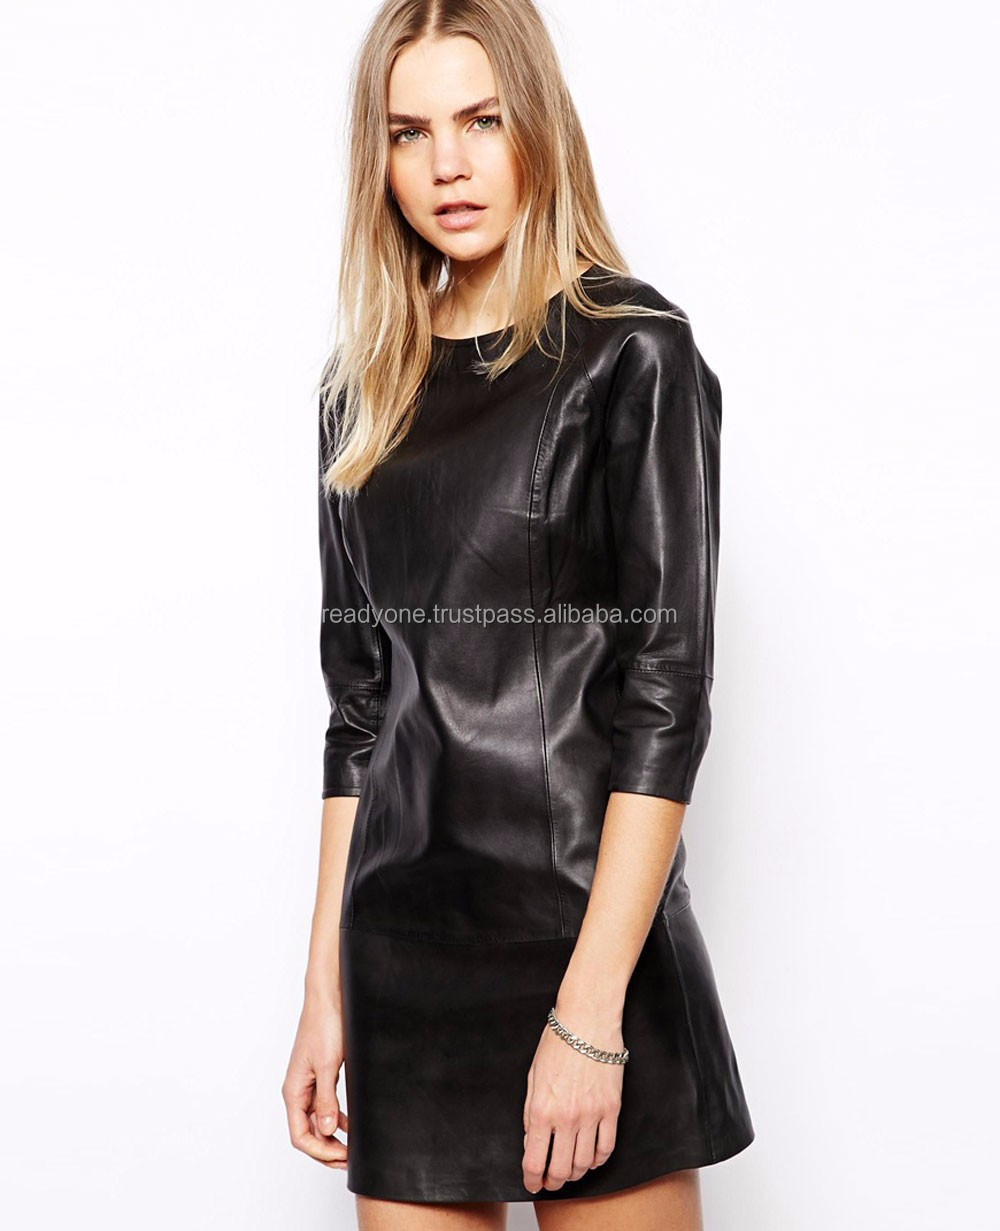 OEM factory wholesale clothing latest dress designs for ladies leather dress